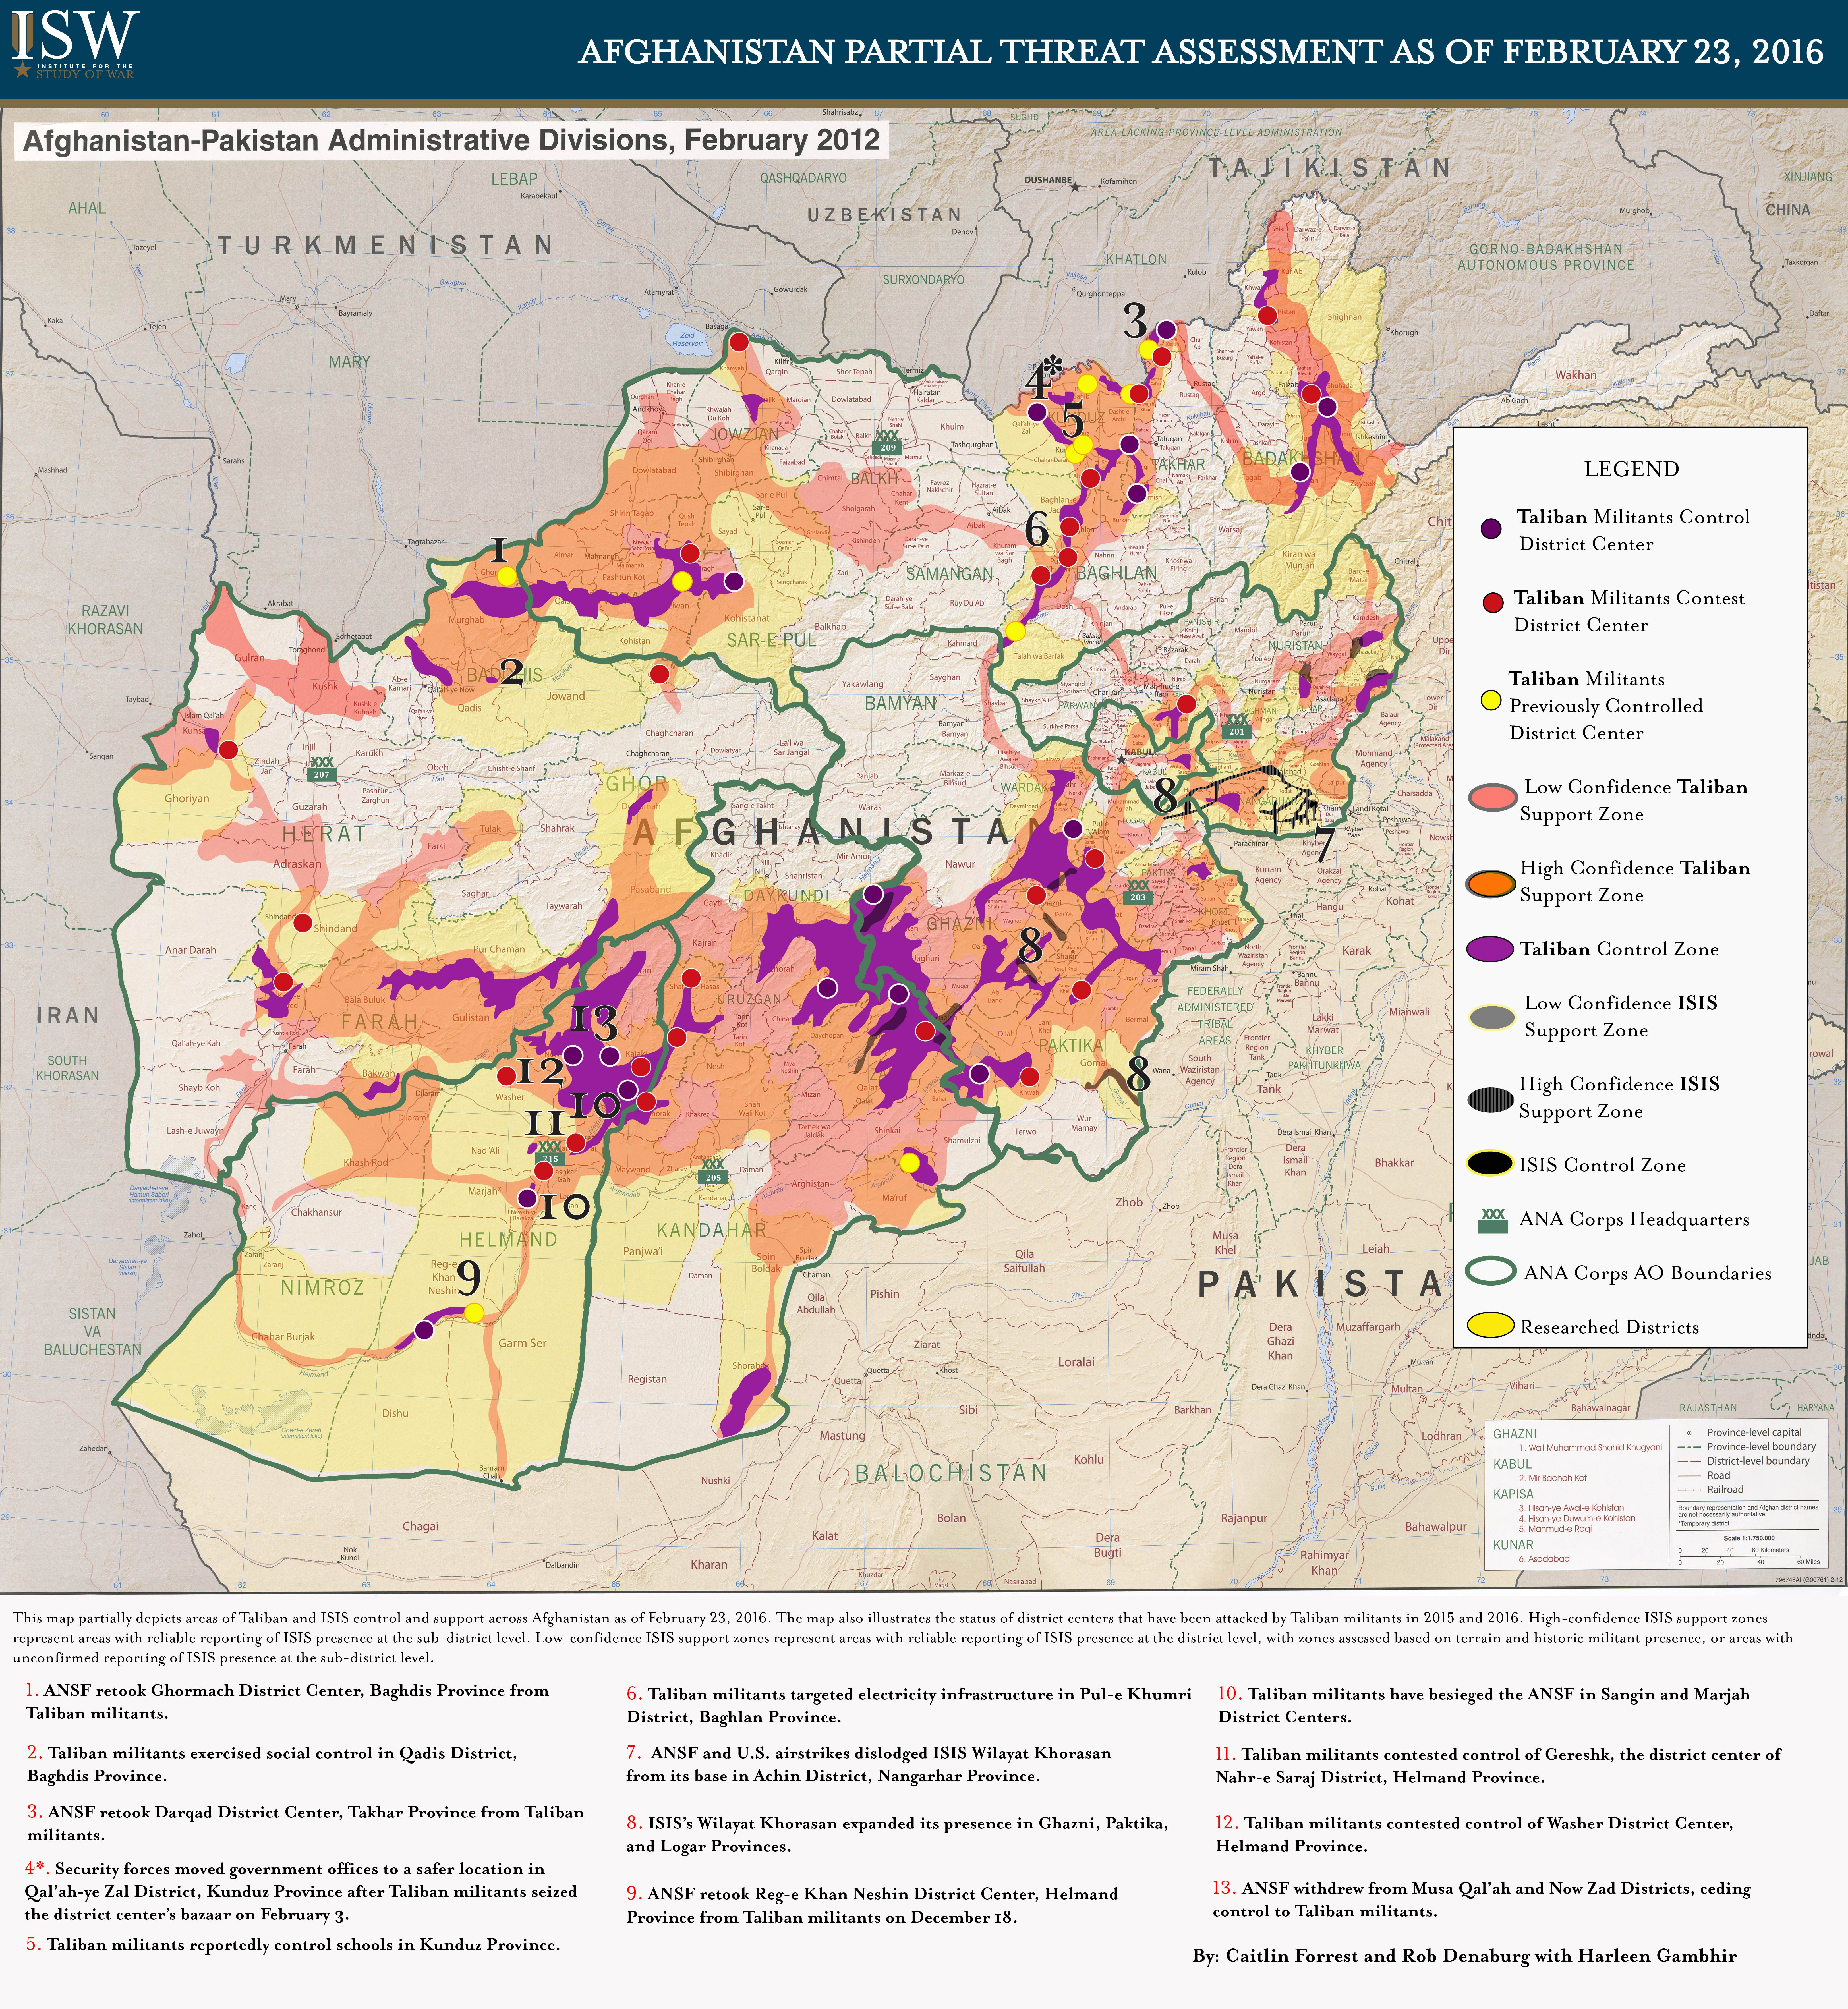 Map room institute for the study of war afghanistan partial threat assessment february 23 2016 gumiabroncs Image collections